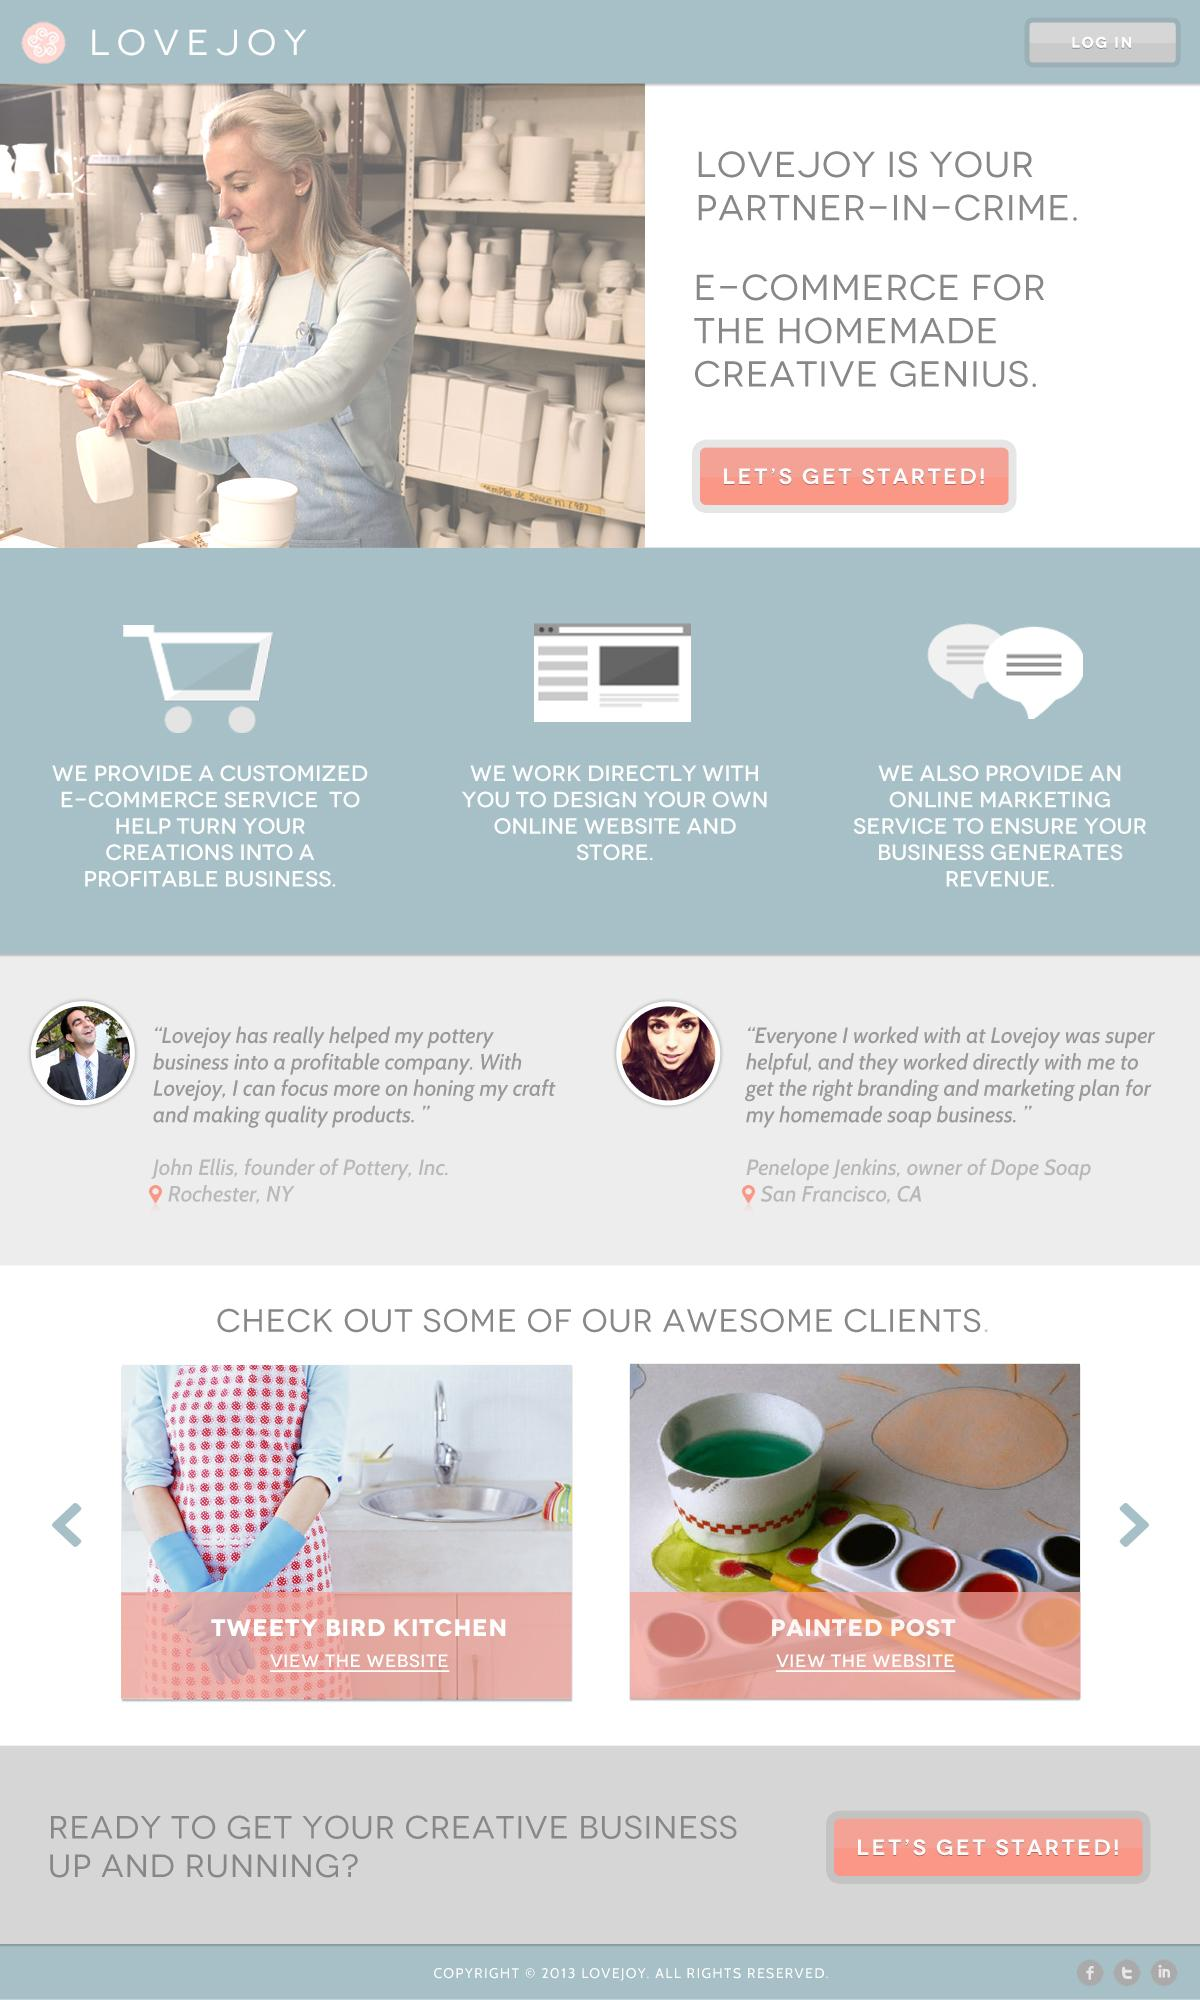 Lovejoy - E-commerce for the homemade creative genius - image 3 - student project